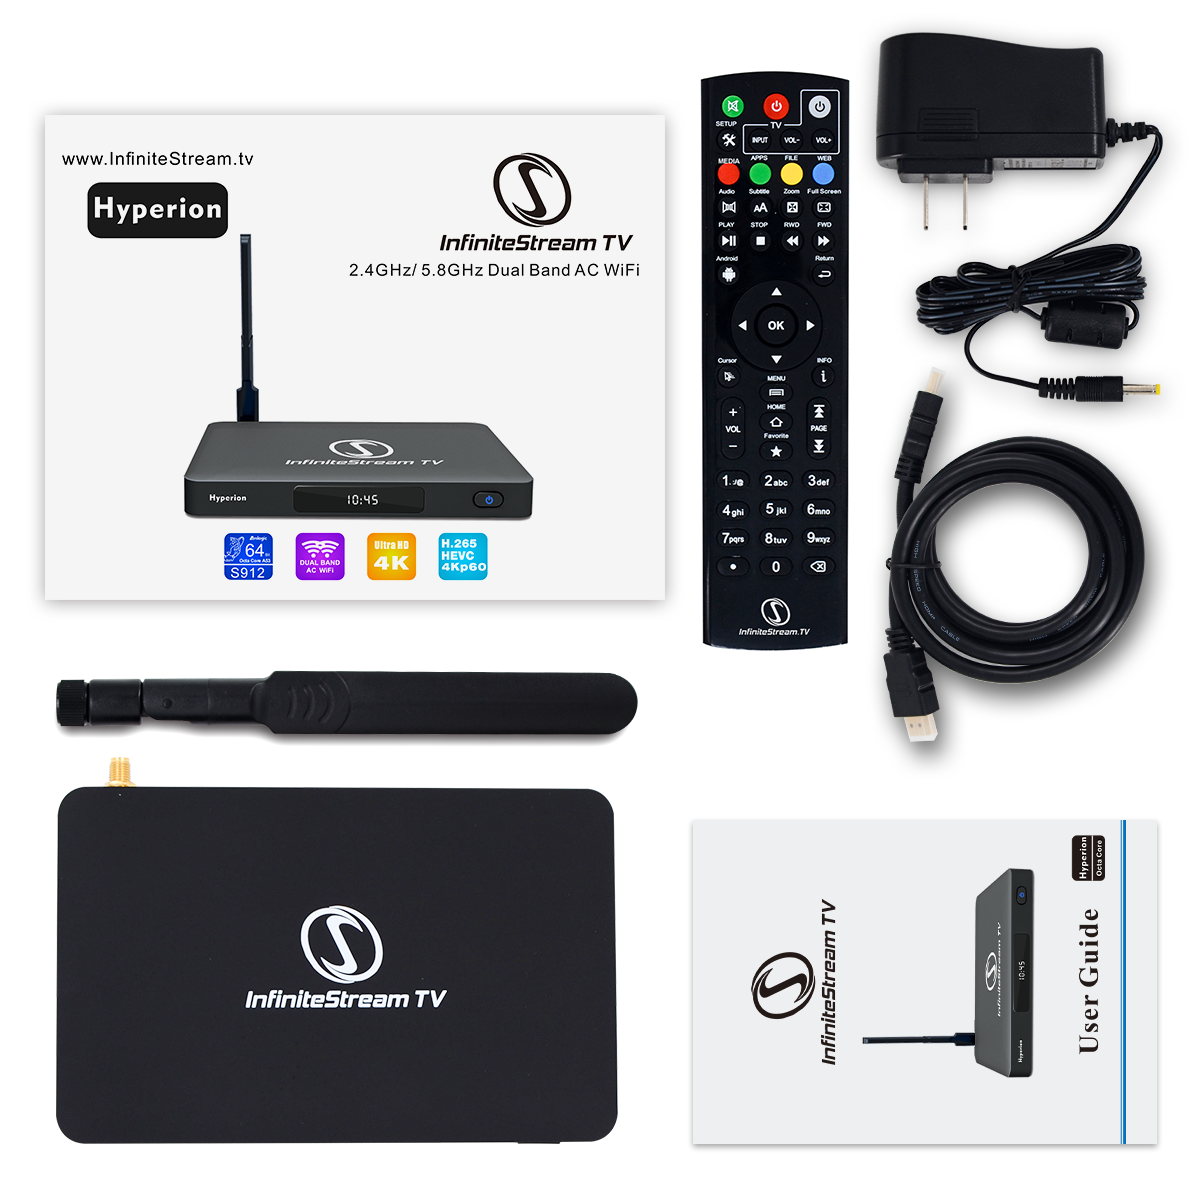 Hyperion Fastest Android Streaming TV box in HD , 4K Octa core, 2/16GB Memory, 2.4-5.8GHz Dual Band WiFi